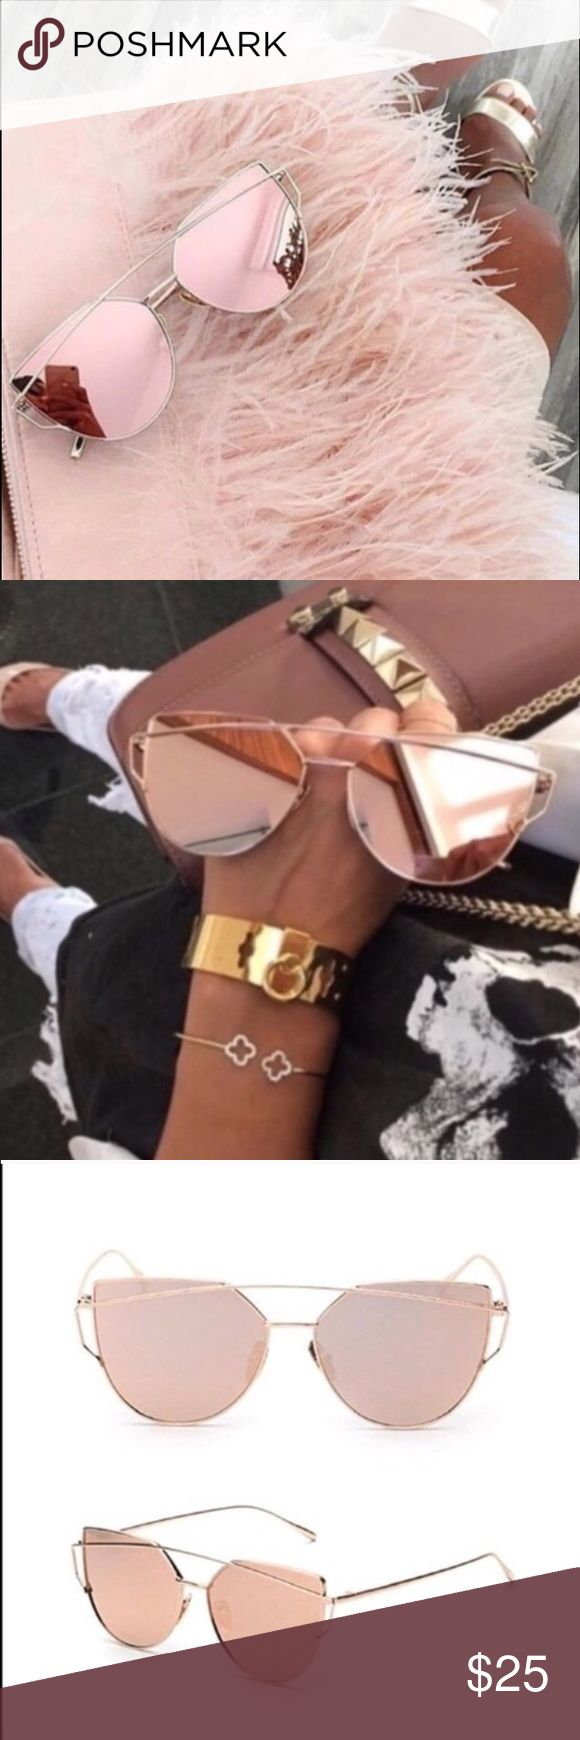 Rose 🌹 Gold Mirrored Sunglasses Brand New and Top quality! Gorgeous Rose Gold Mirrored Sunglasses. Cat Eye Aviator.💝 Color: Pink and gold. Accessories Glasses